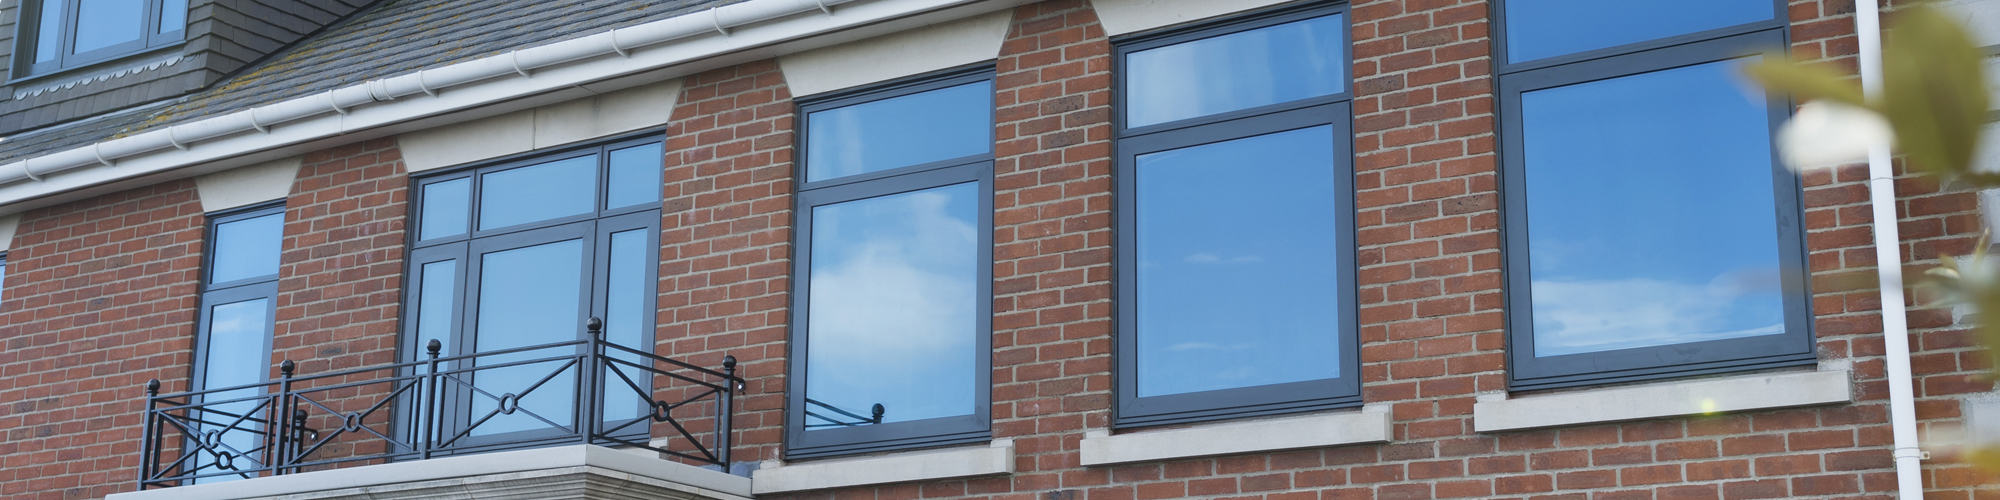 commercial windows, pvcu windows, upvc window designs, double glazed